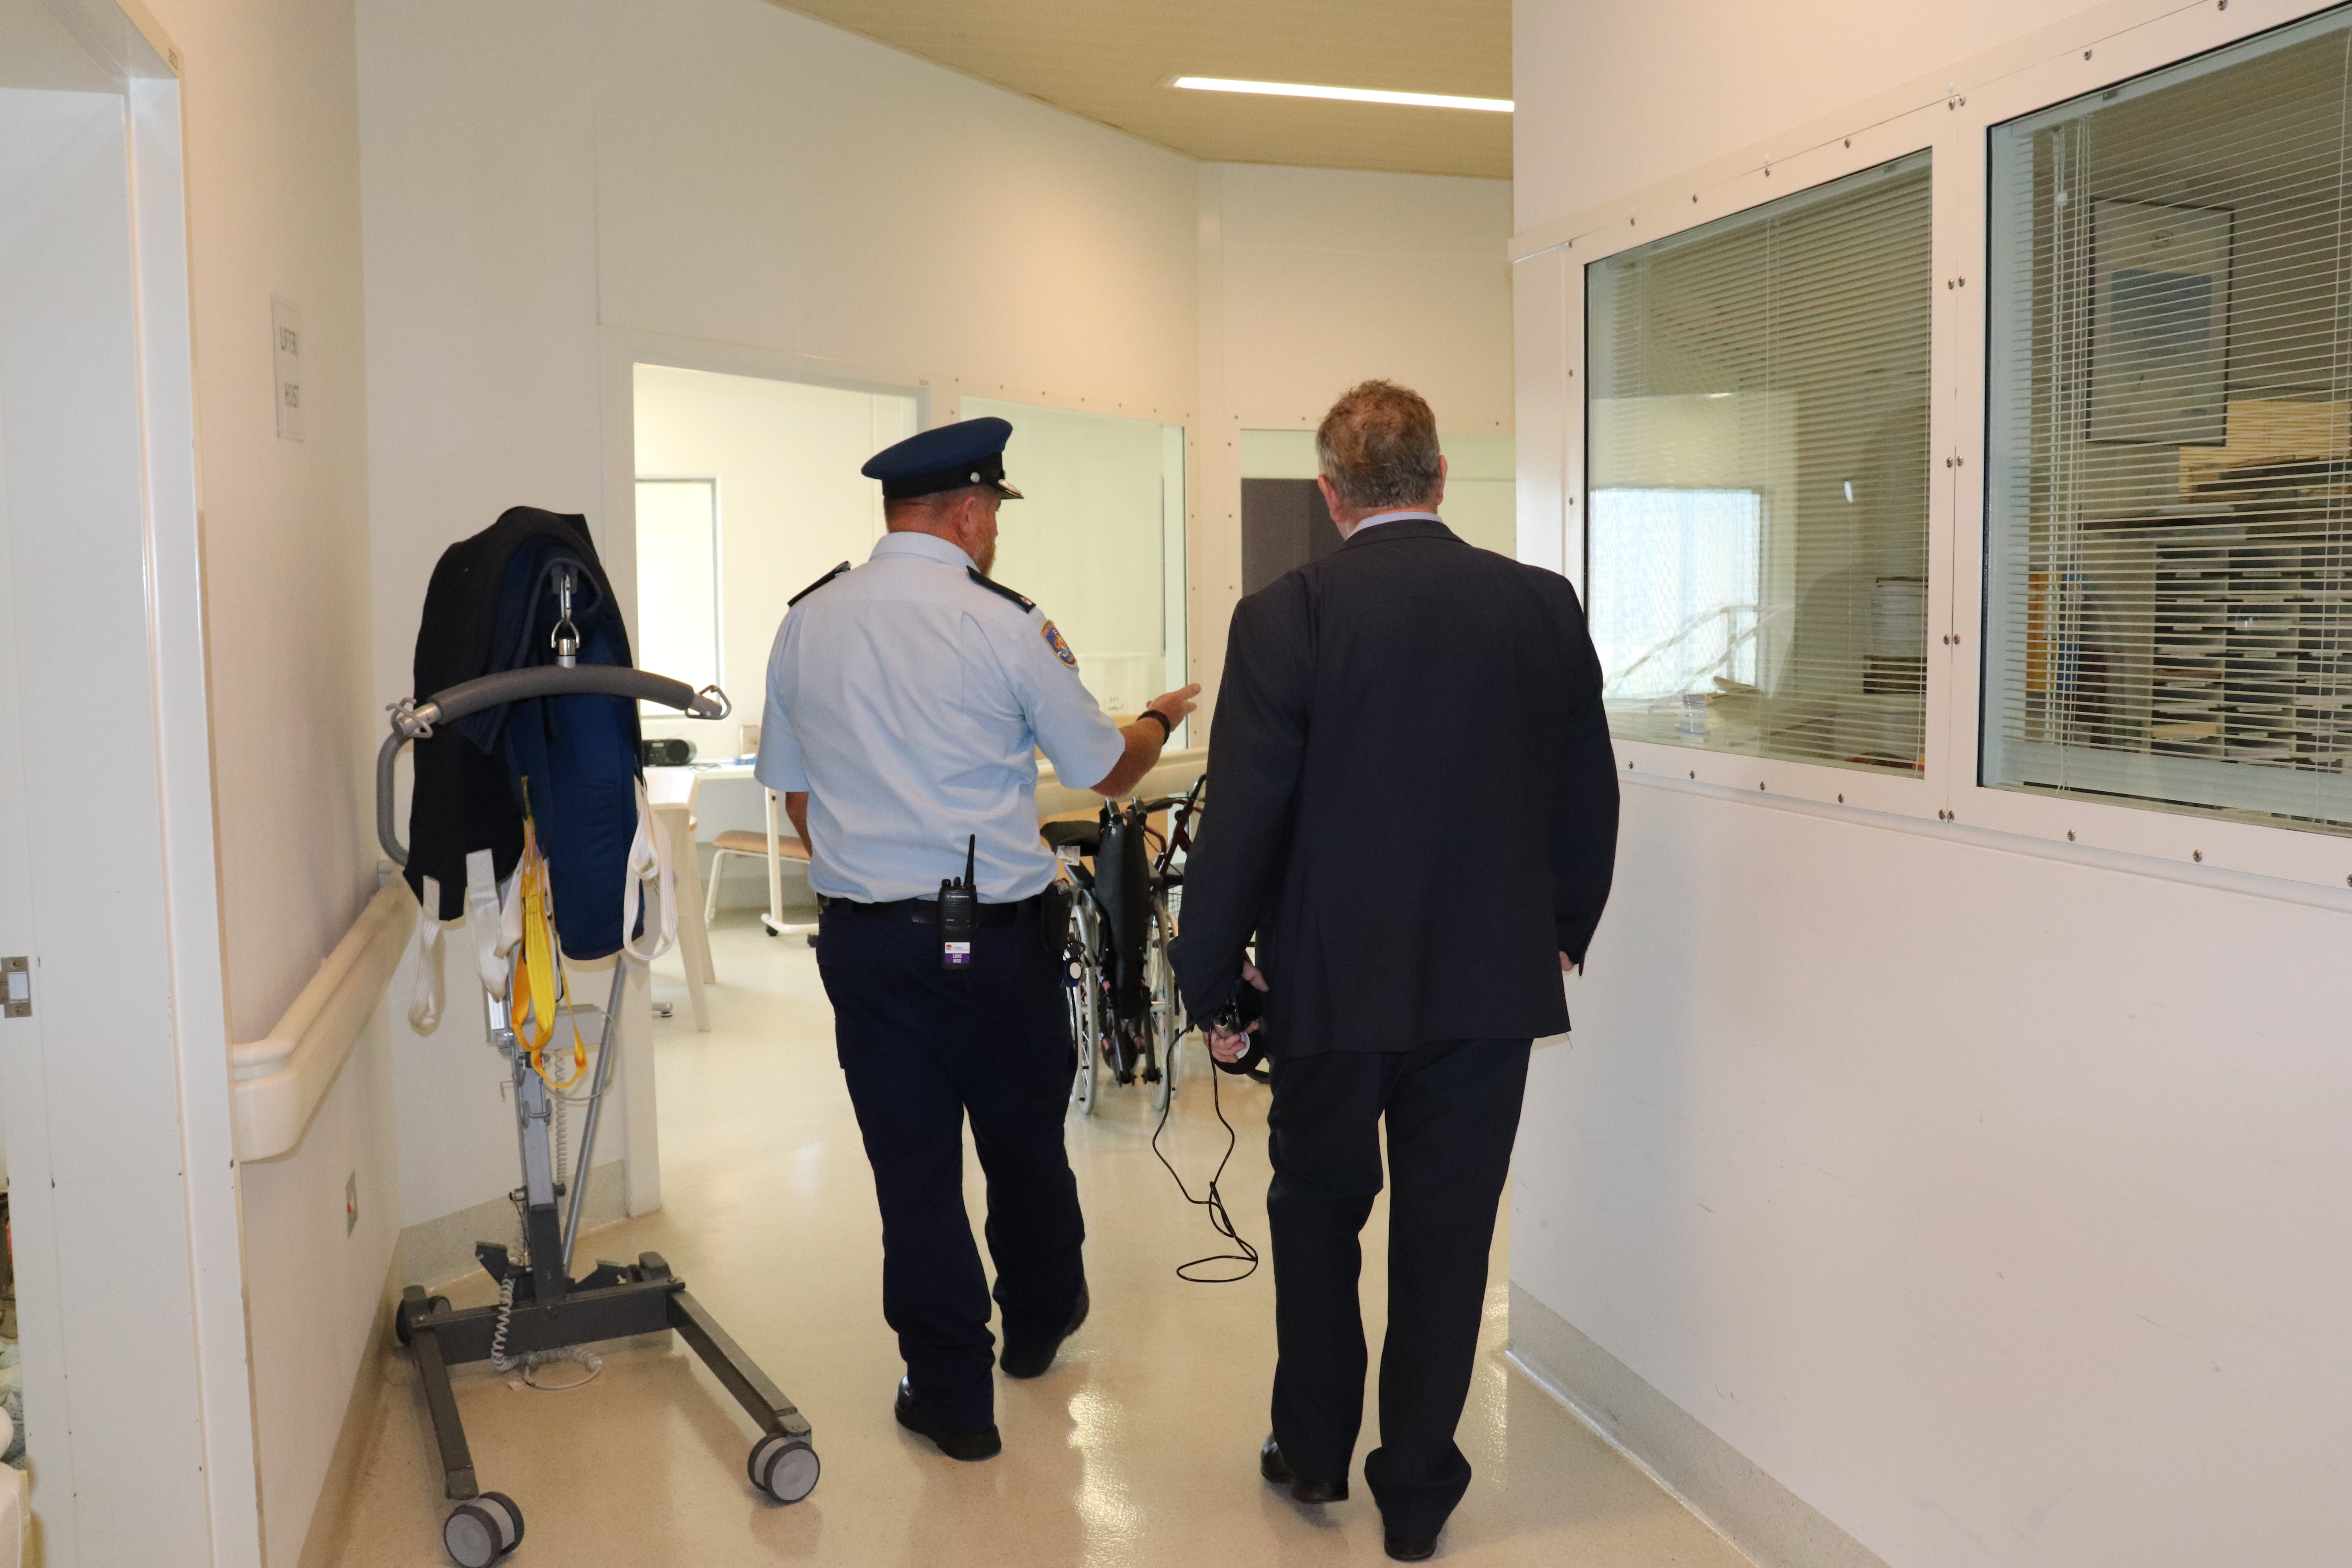 Courtesy of CSNSW - Tour of Long Bay Hospital 1